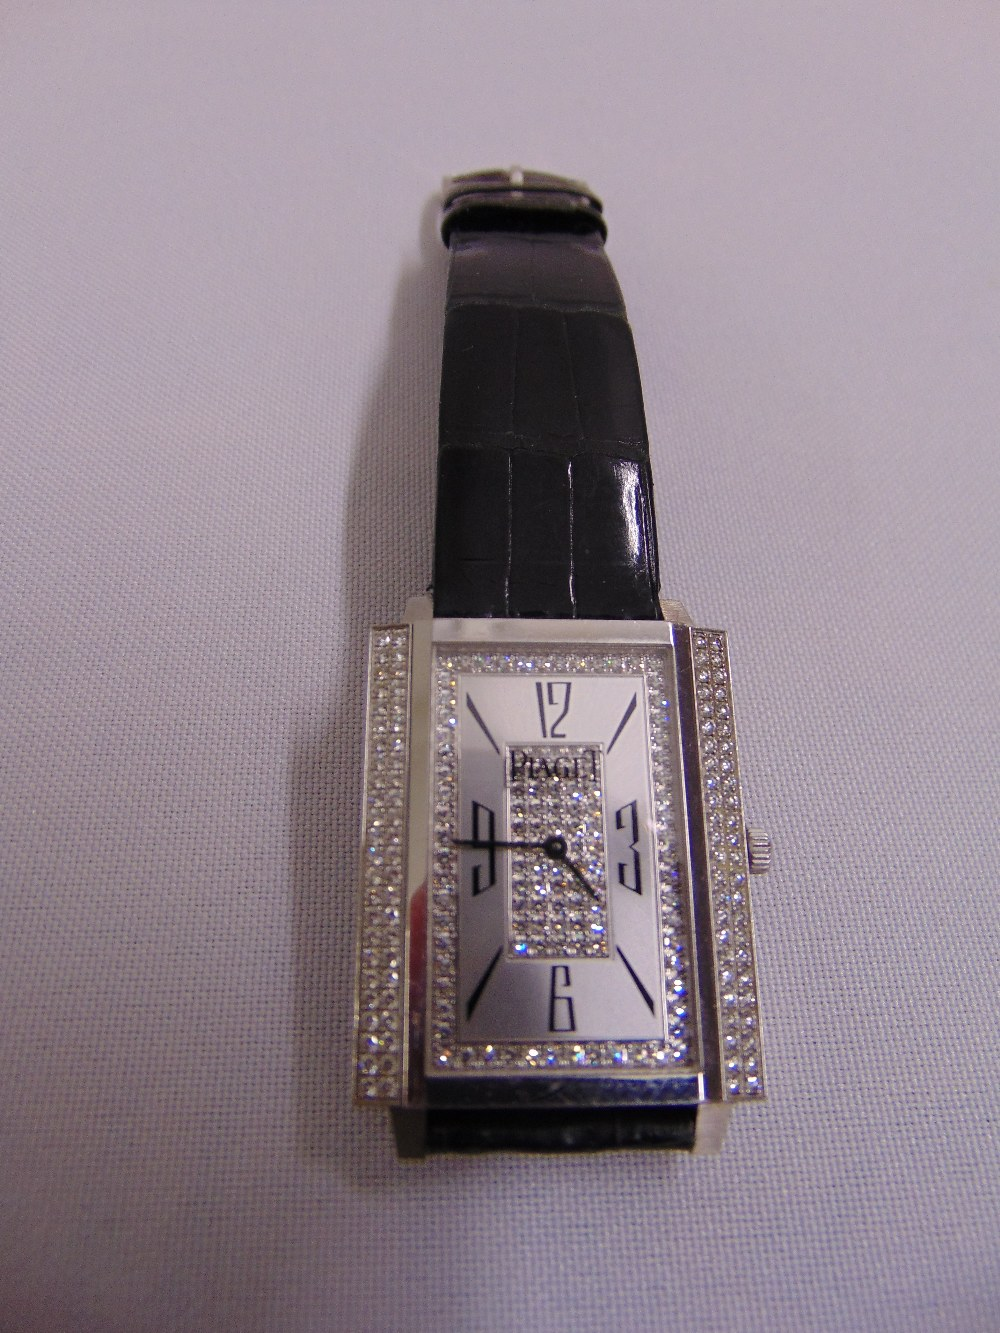 Lot 322 - Piaget Mecanique 750 wristwatch set with diamonds to the face and bezel with Piaget leather and gold